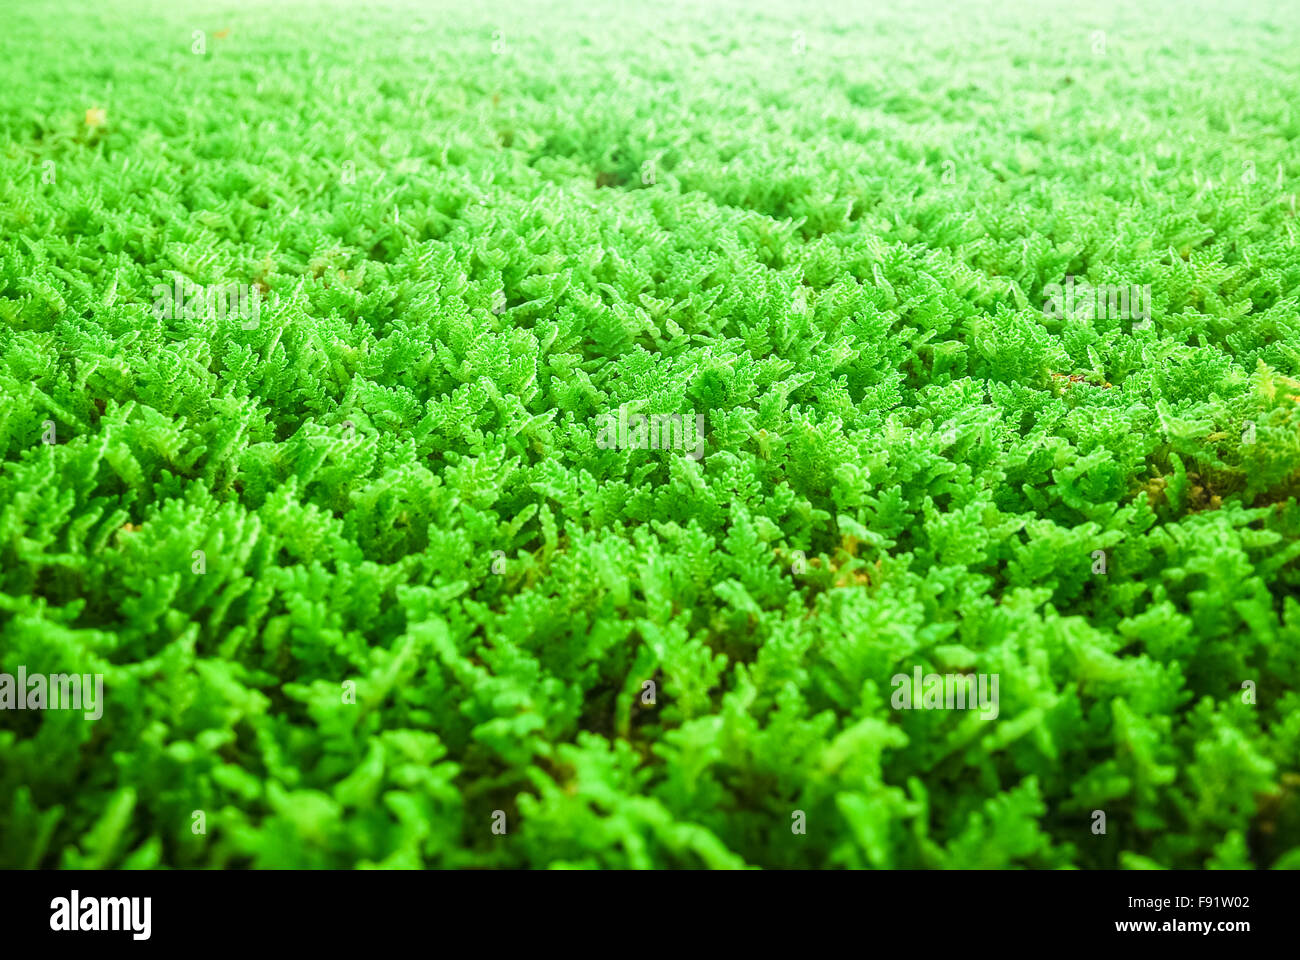 Algae used for water purification - Stock Image